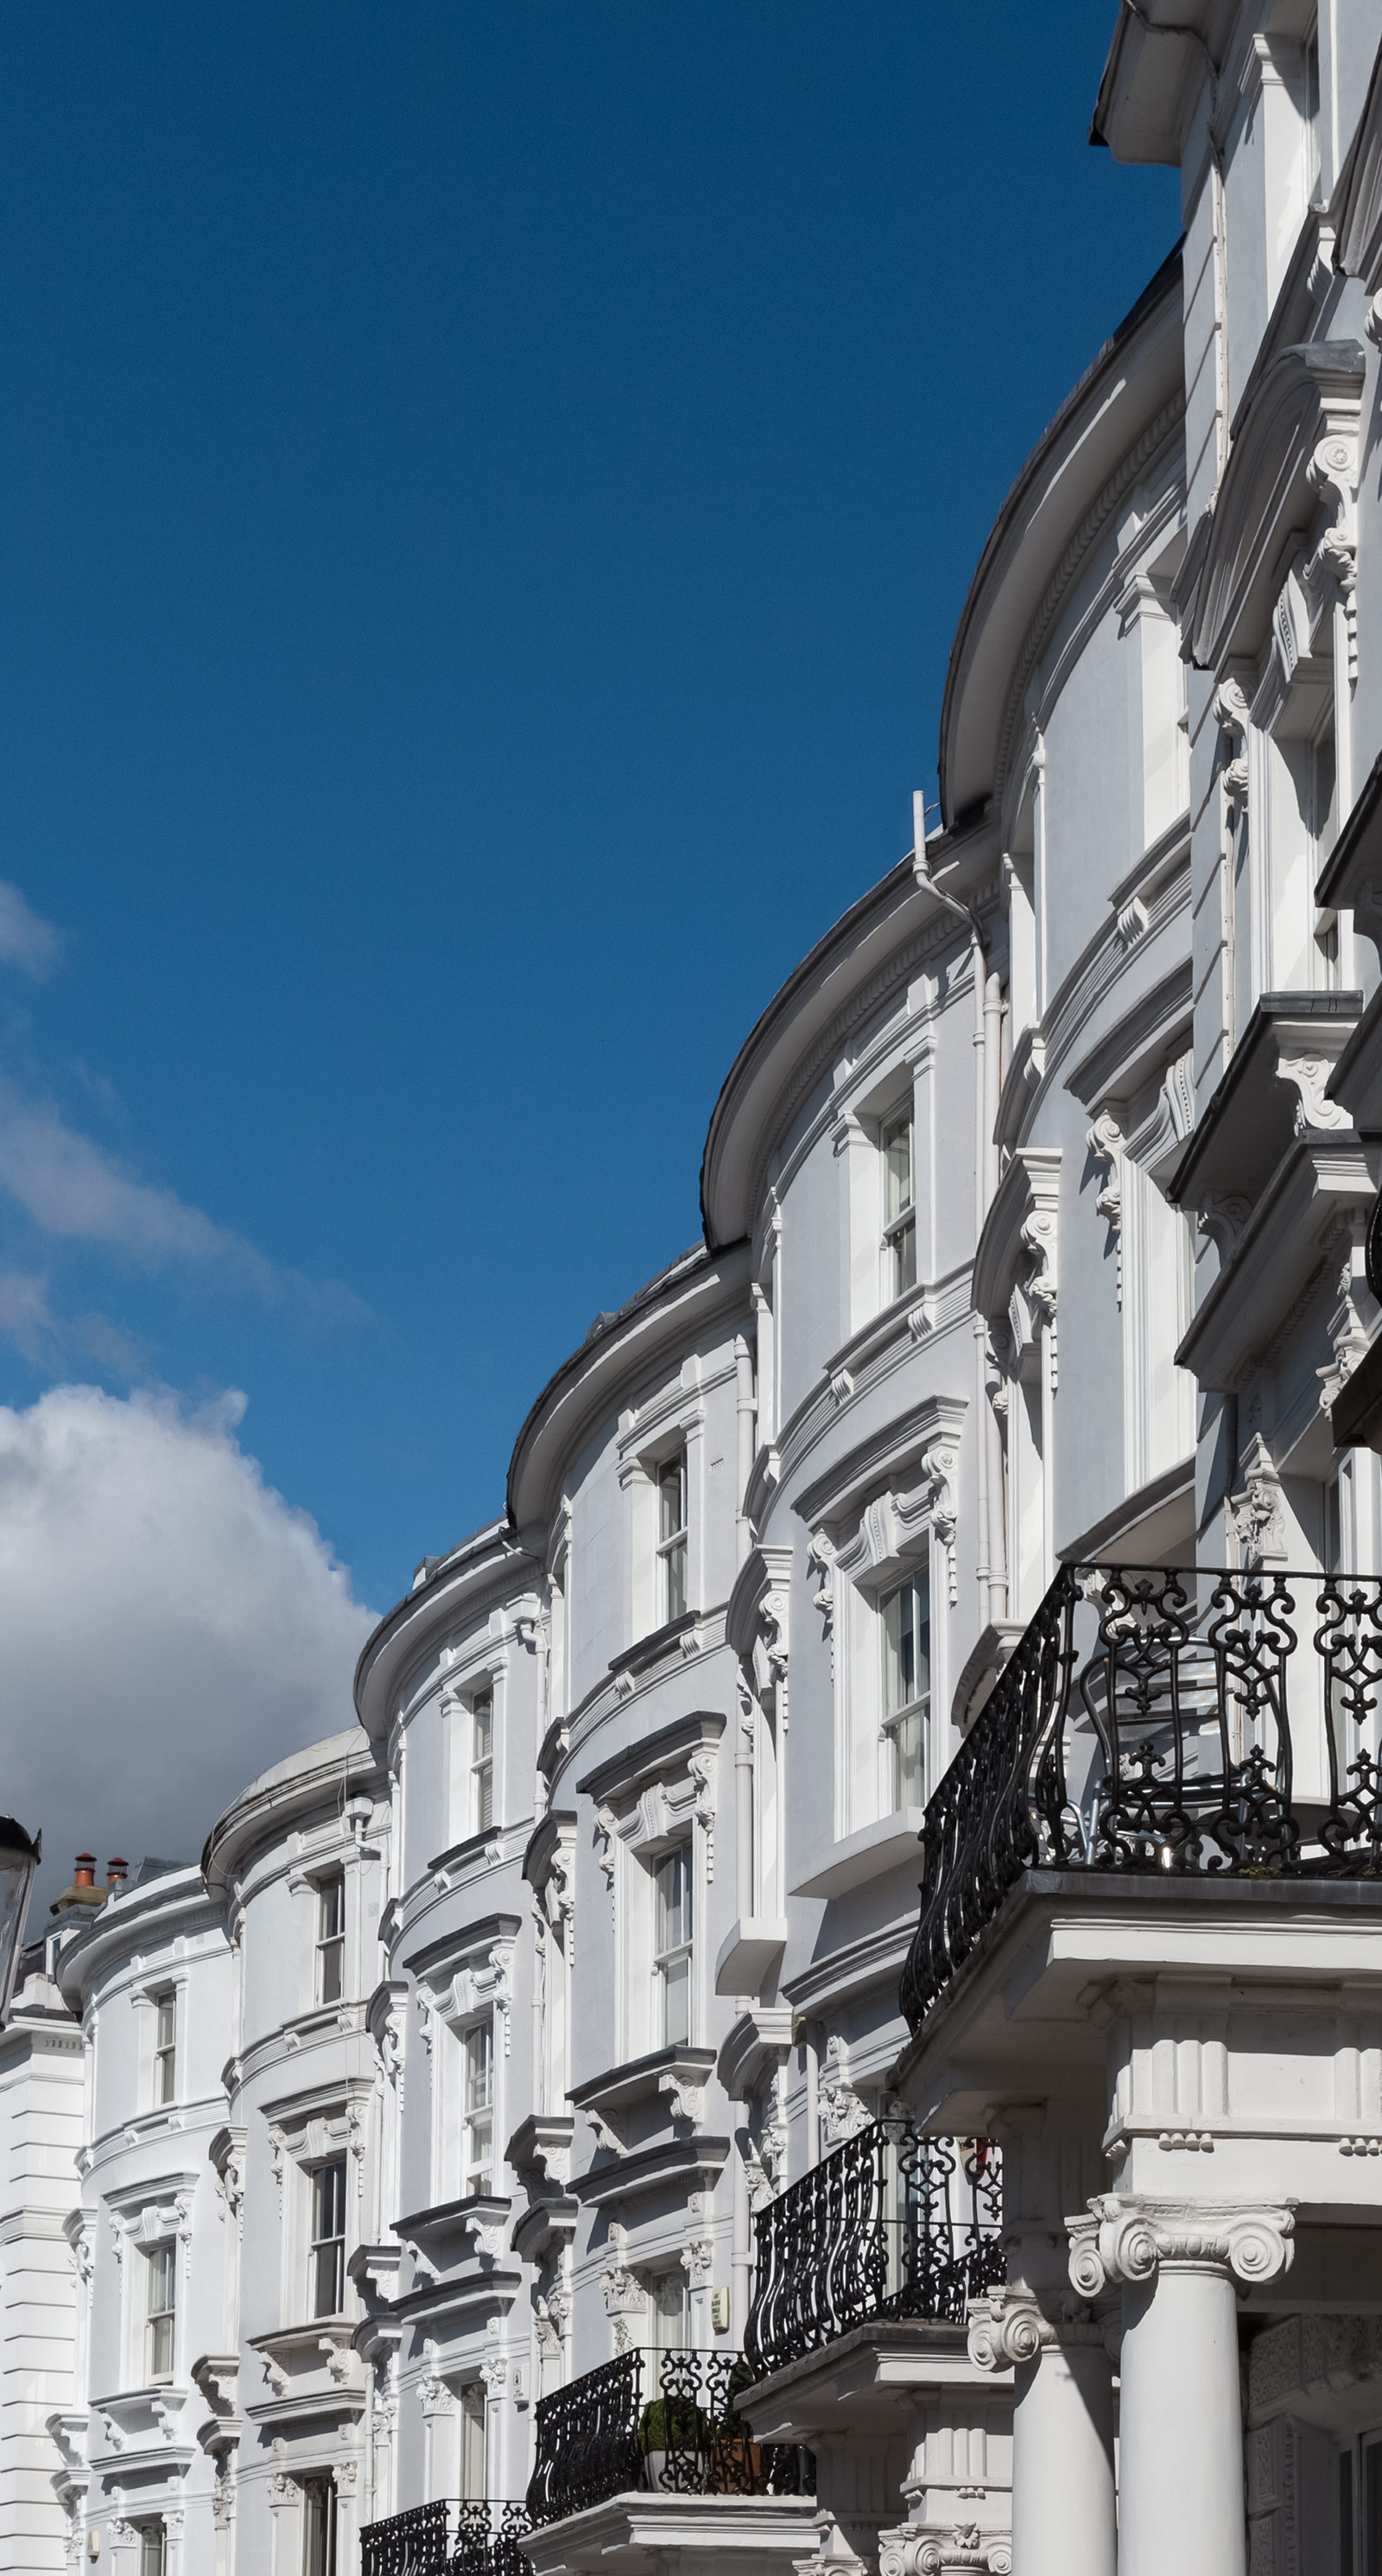 Residential property law image of town houses.